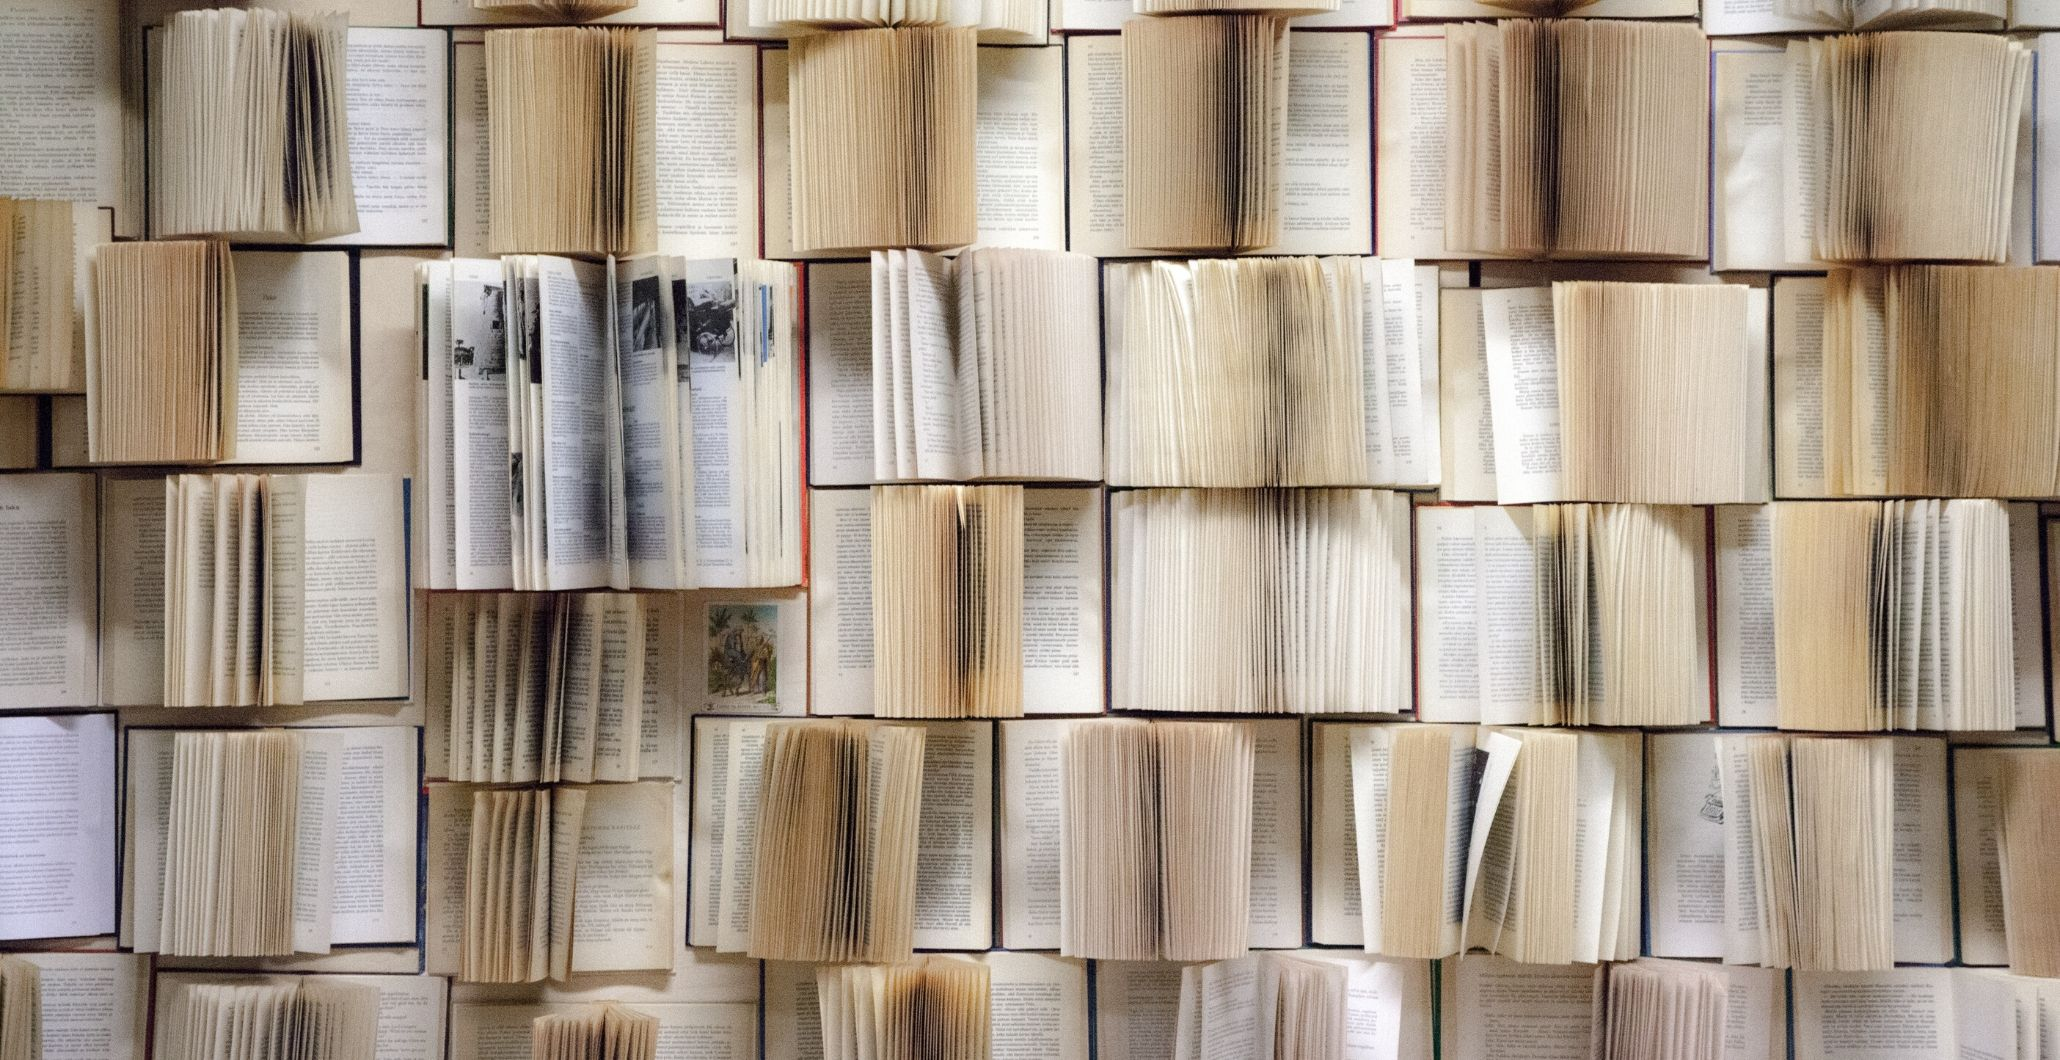 Get Crafty With Your Old Books